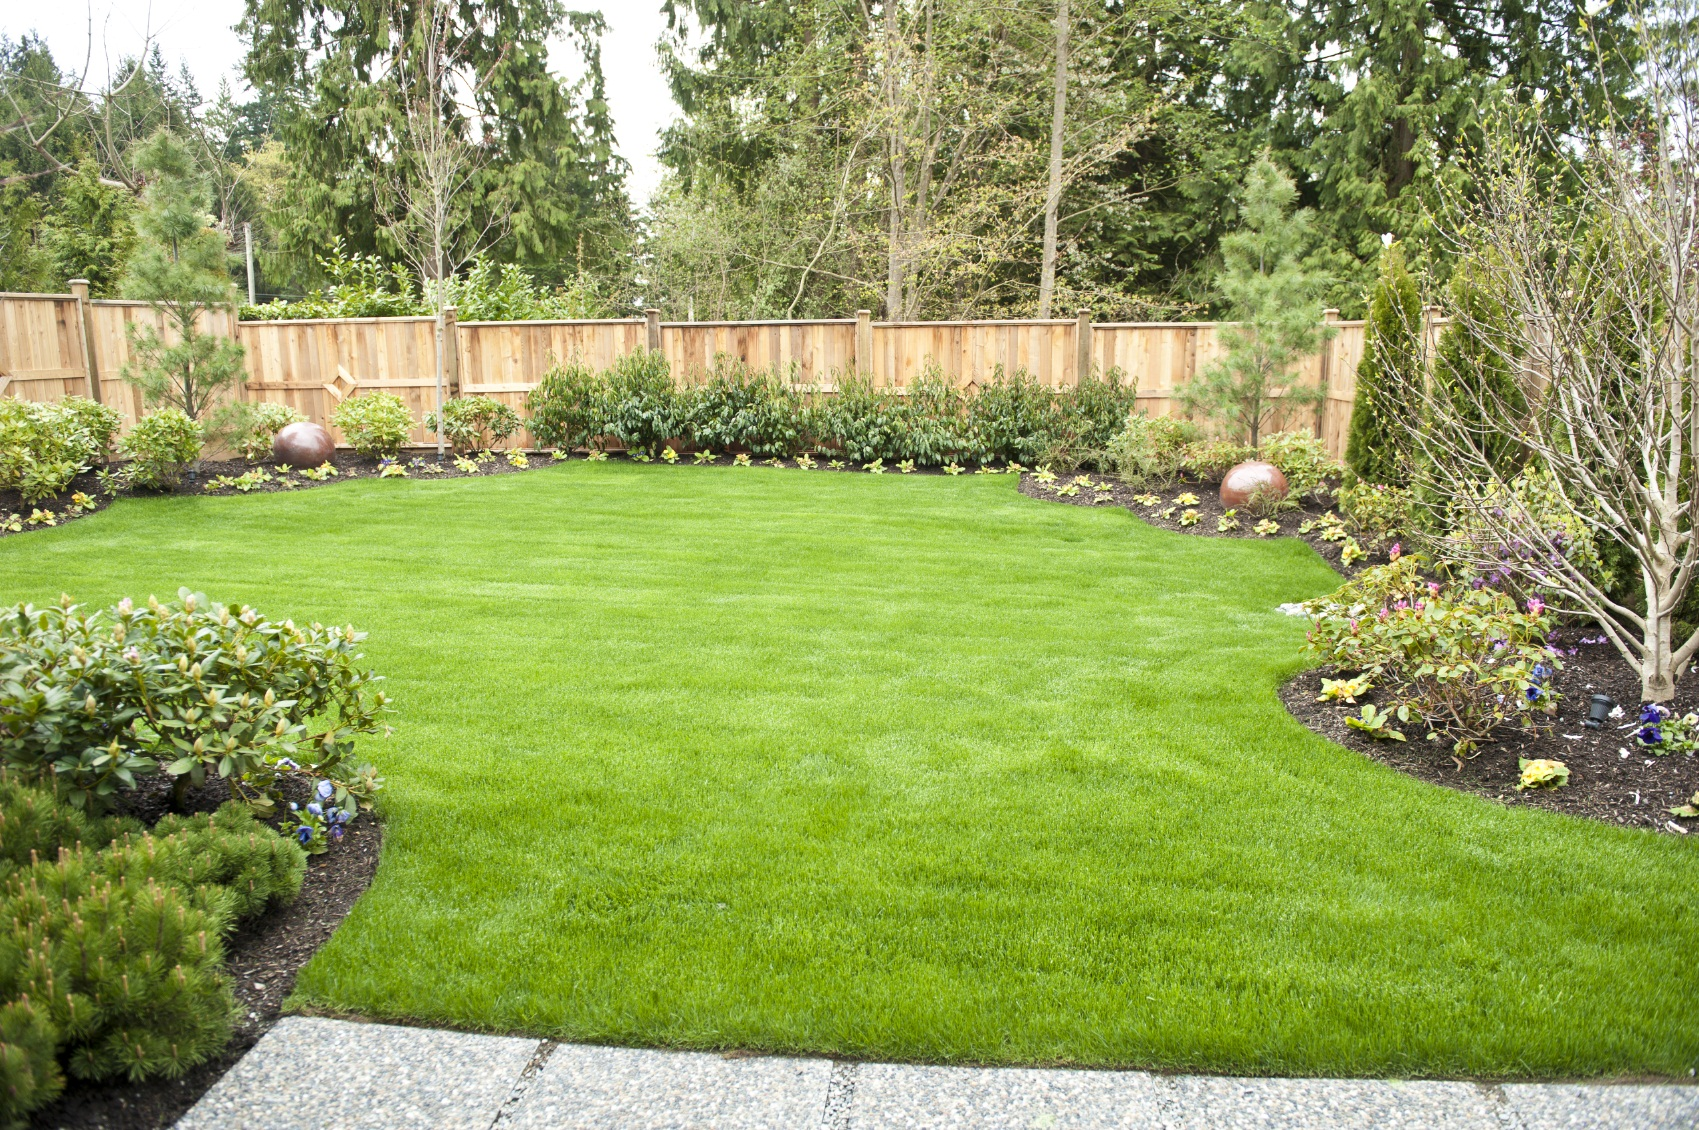 Backyard landscaping tips metamorphosis landscape design for Simple garden design ideas